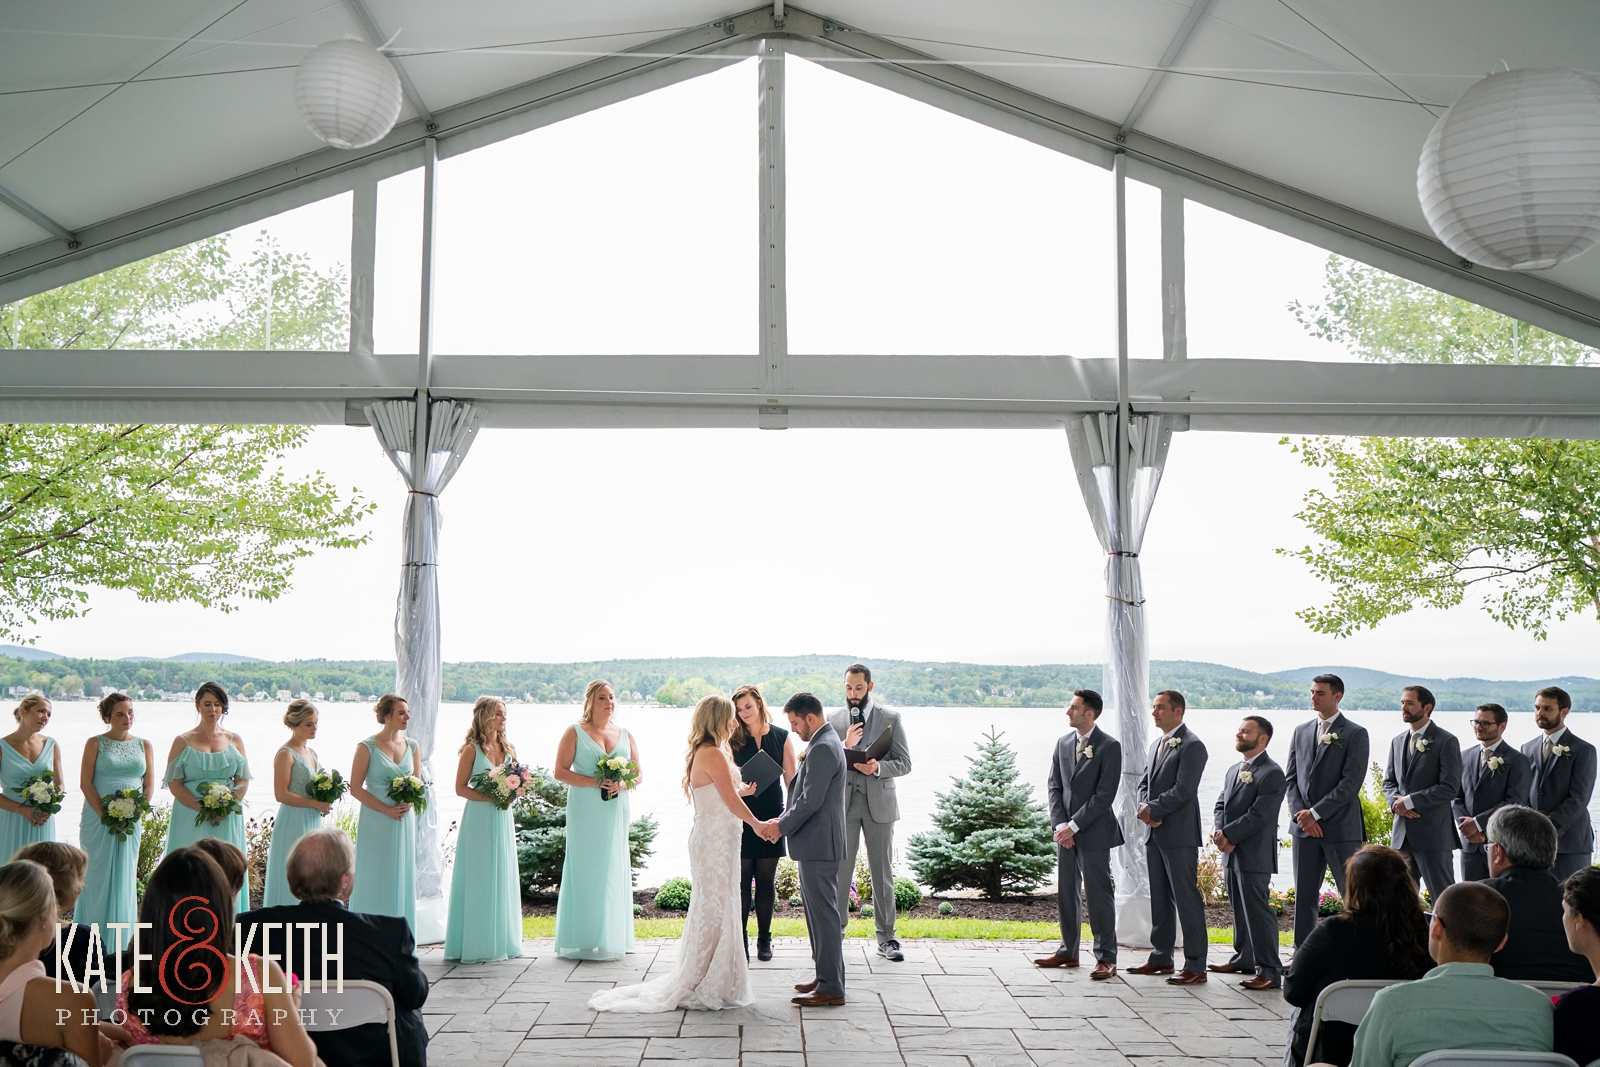 New Hampshire, Lakes Region, Lake Winnipesaukee, The Margate Resort, wedding, outdoor wedding, lakeside wedding, wedding ceremony, outdoor ceremony, tented ceremony, emotional moment, wedding party, wedding guests,